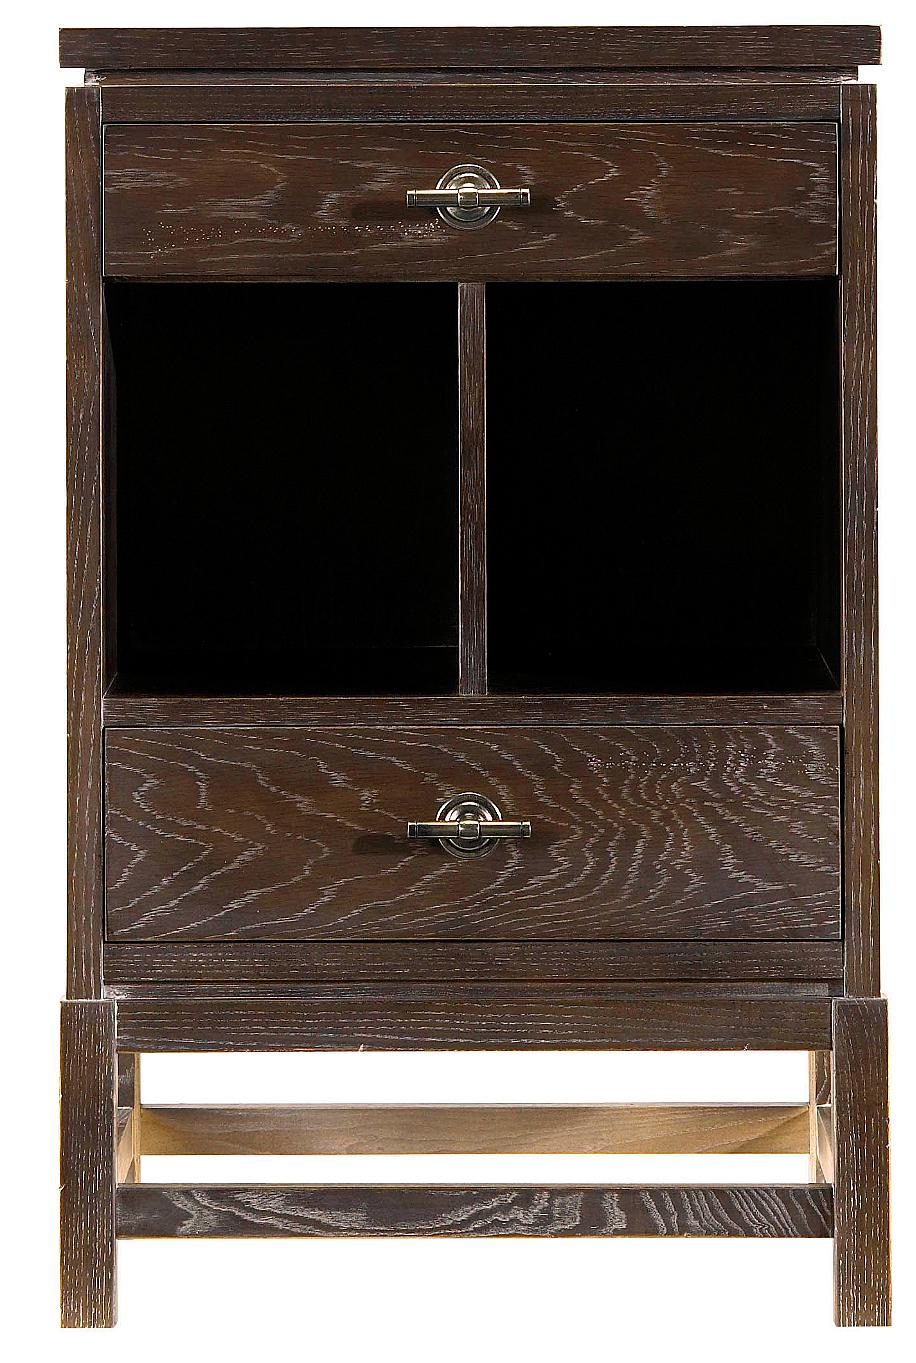 Stanley Furniture Coastal Living Resort Traquility Isle Telephone Table - Item Number: 062-13-81